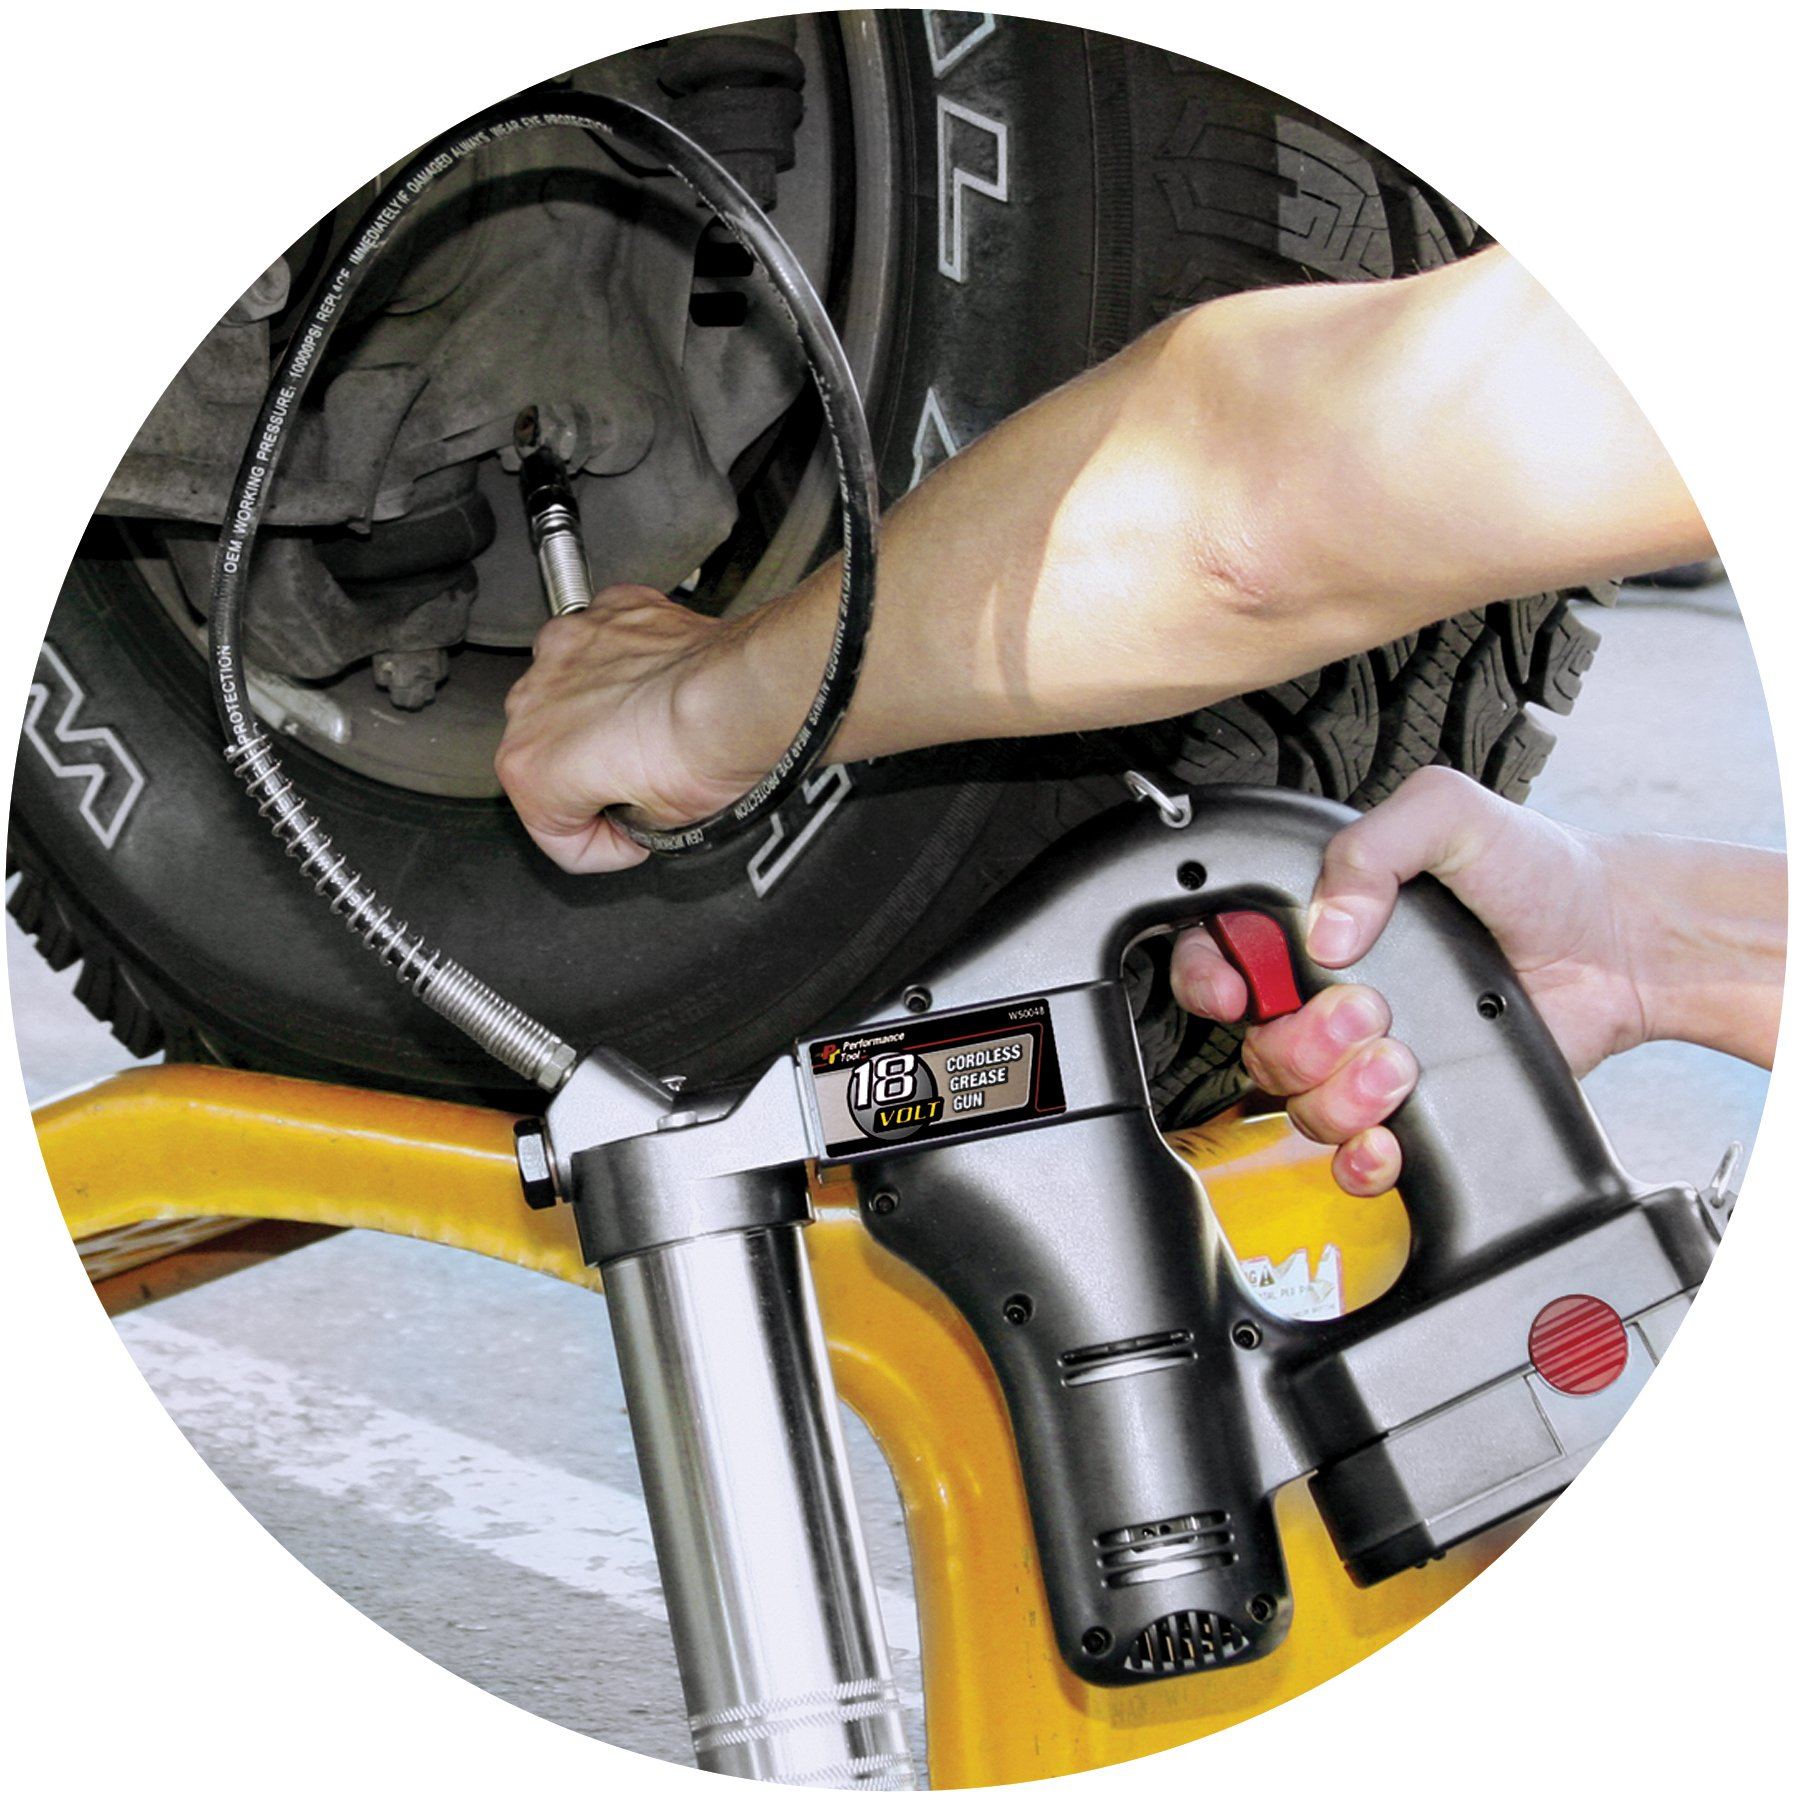 Performance Tool W50048 18-volt Cordless Grease Gun by Performance Tool (Image #4)